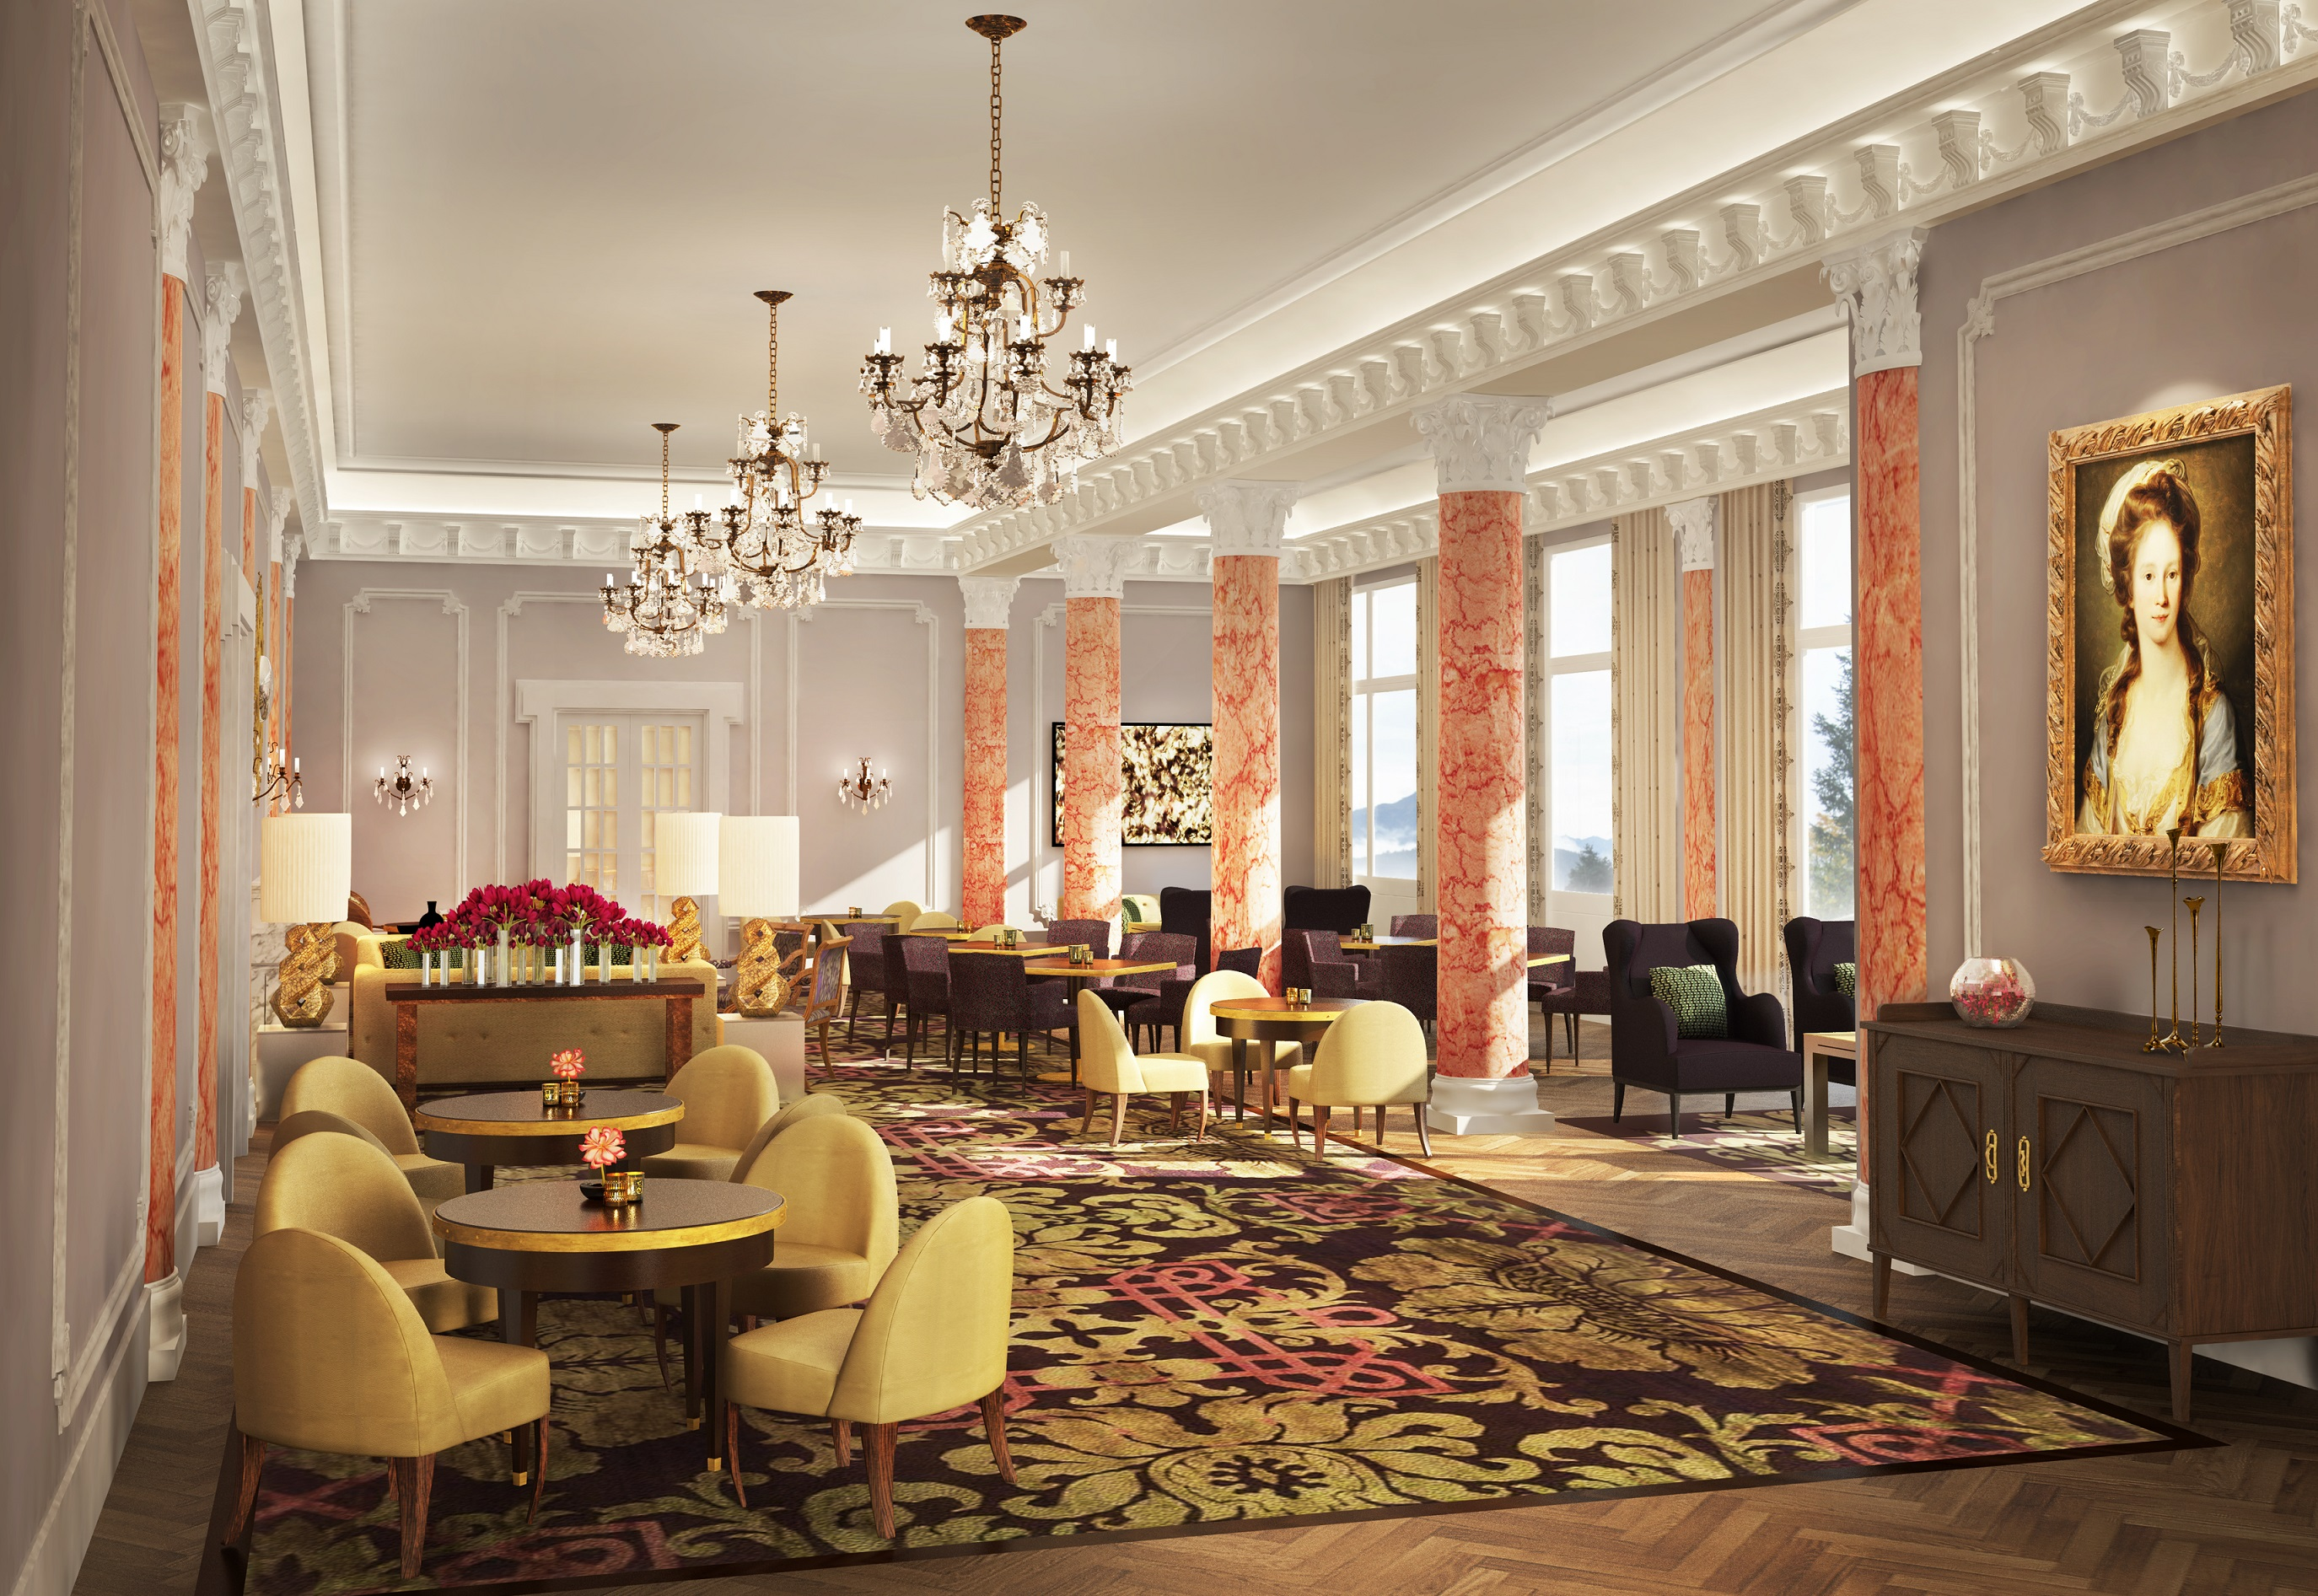 Palace Hotel To Open In June At Bürgenstock Resort